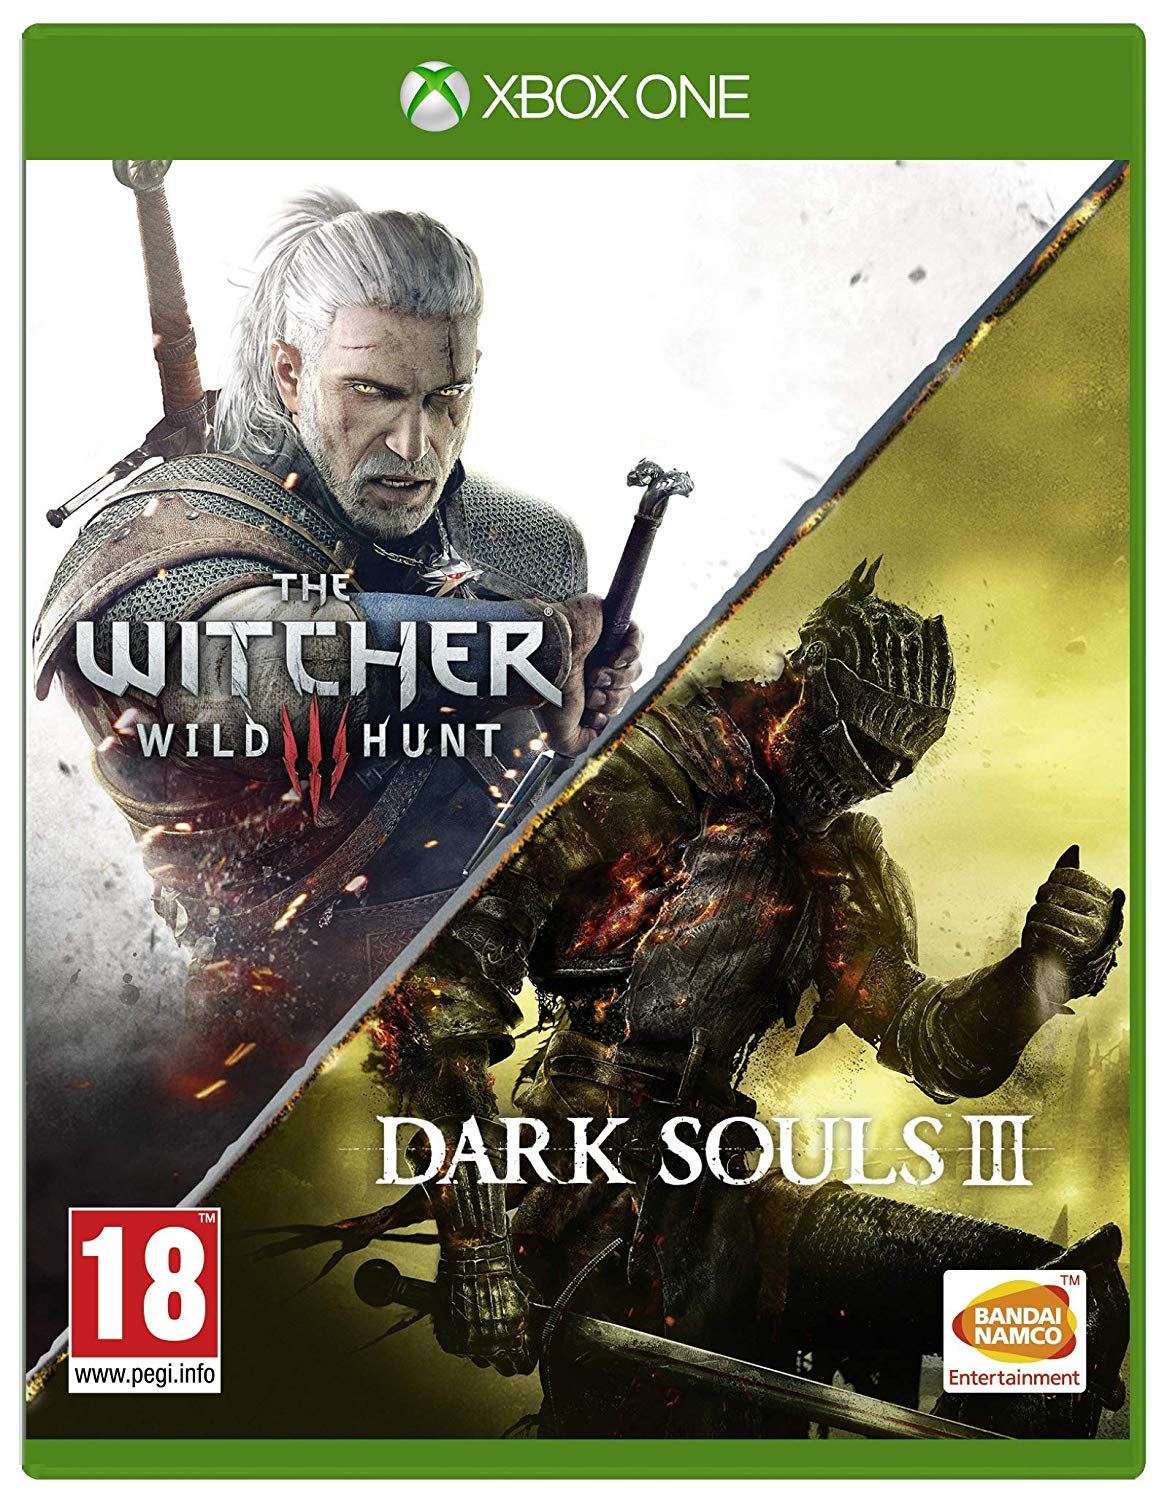 Dark Souls III & The Witcher 3 Wild Hunt Compilation Xbox One